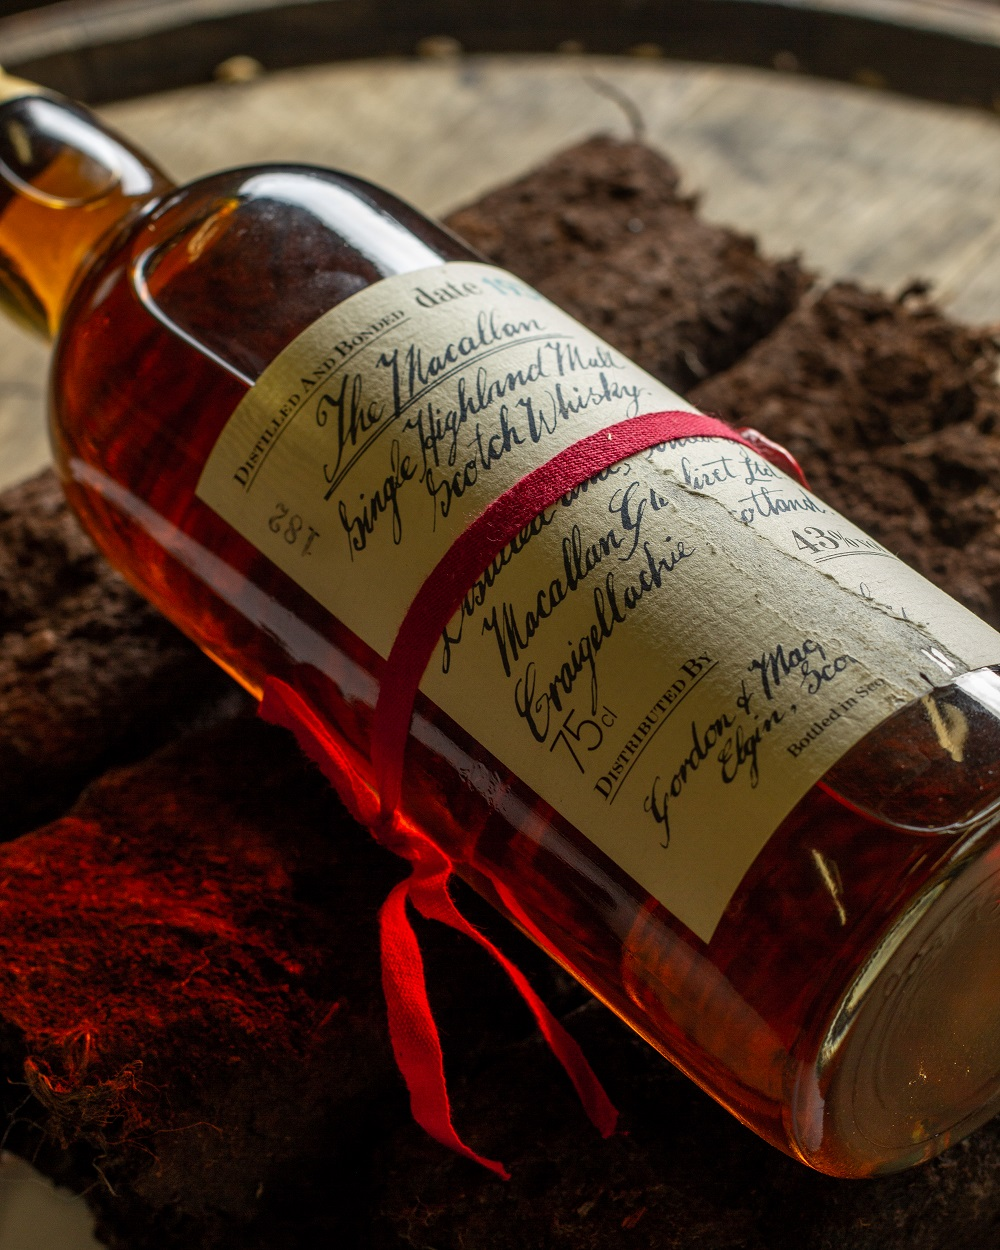 Sell your Macallan Red Ribbon Handwritten Label whisky